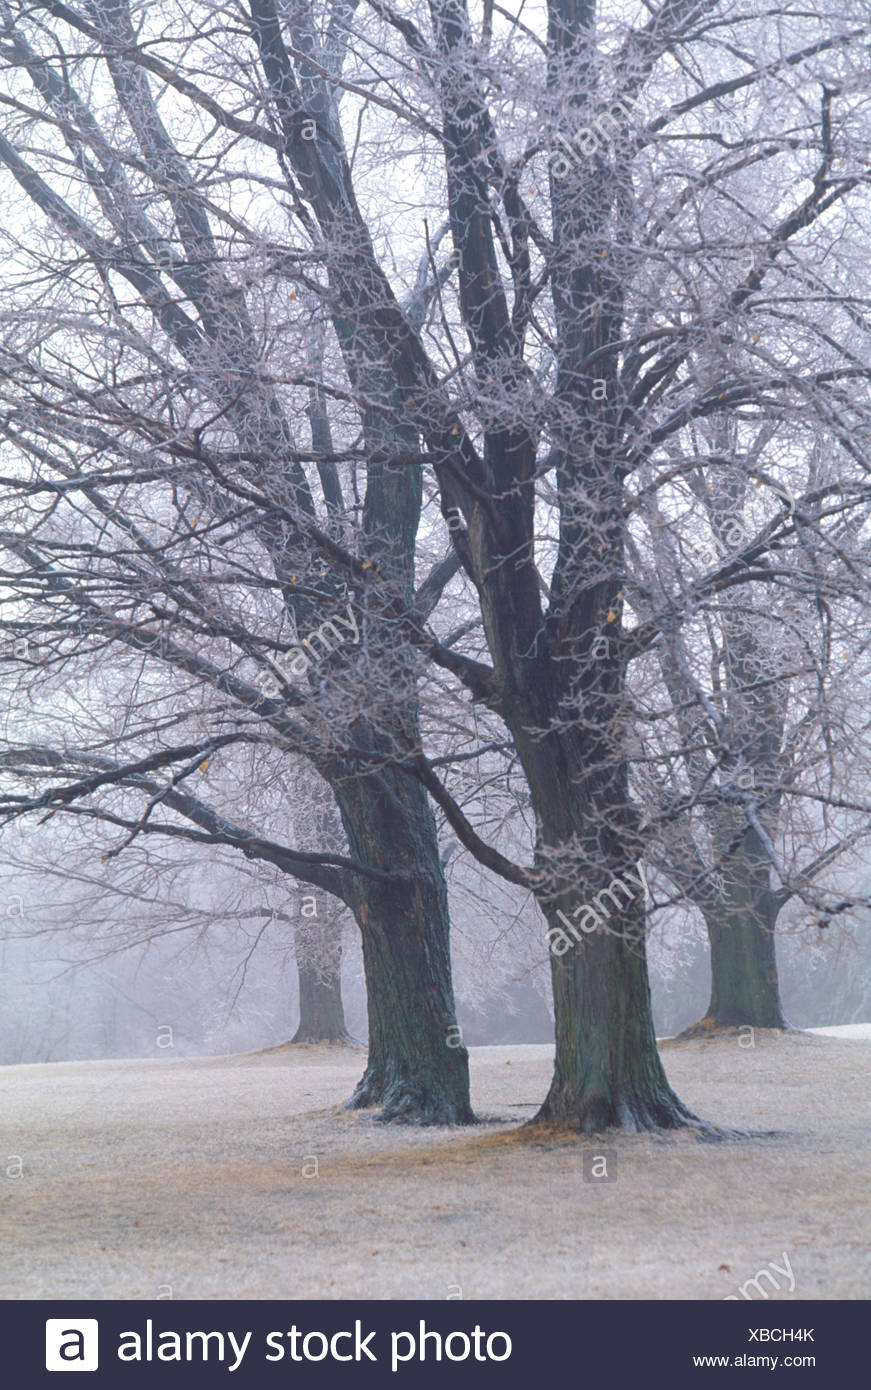 Wintery park with large bare trees - Stock Image